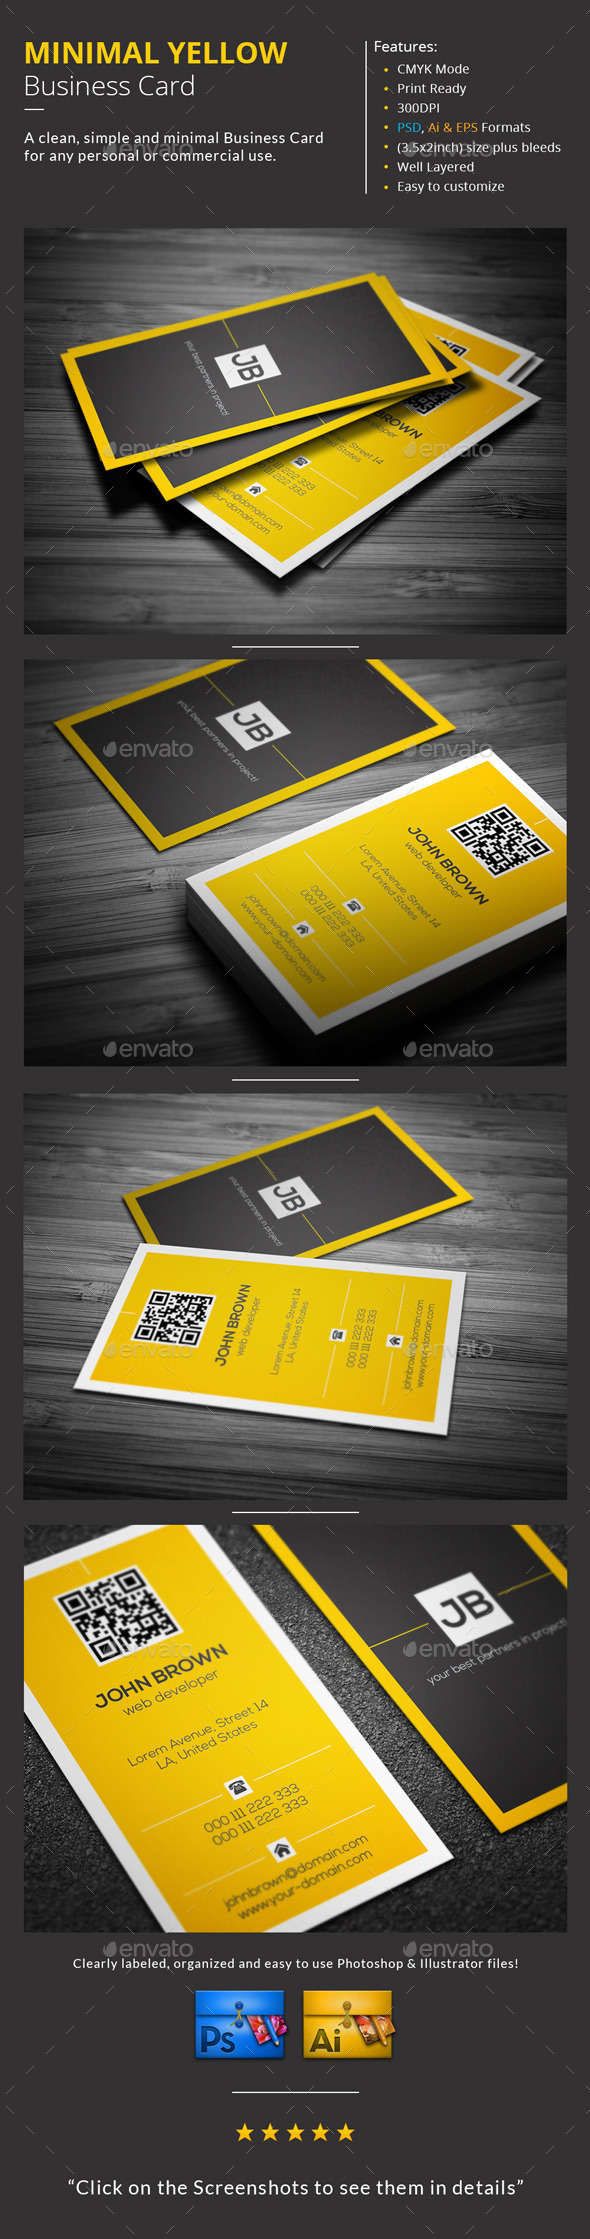 GraphicRiver Minimal Yellow Business Card 9963469